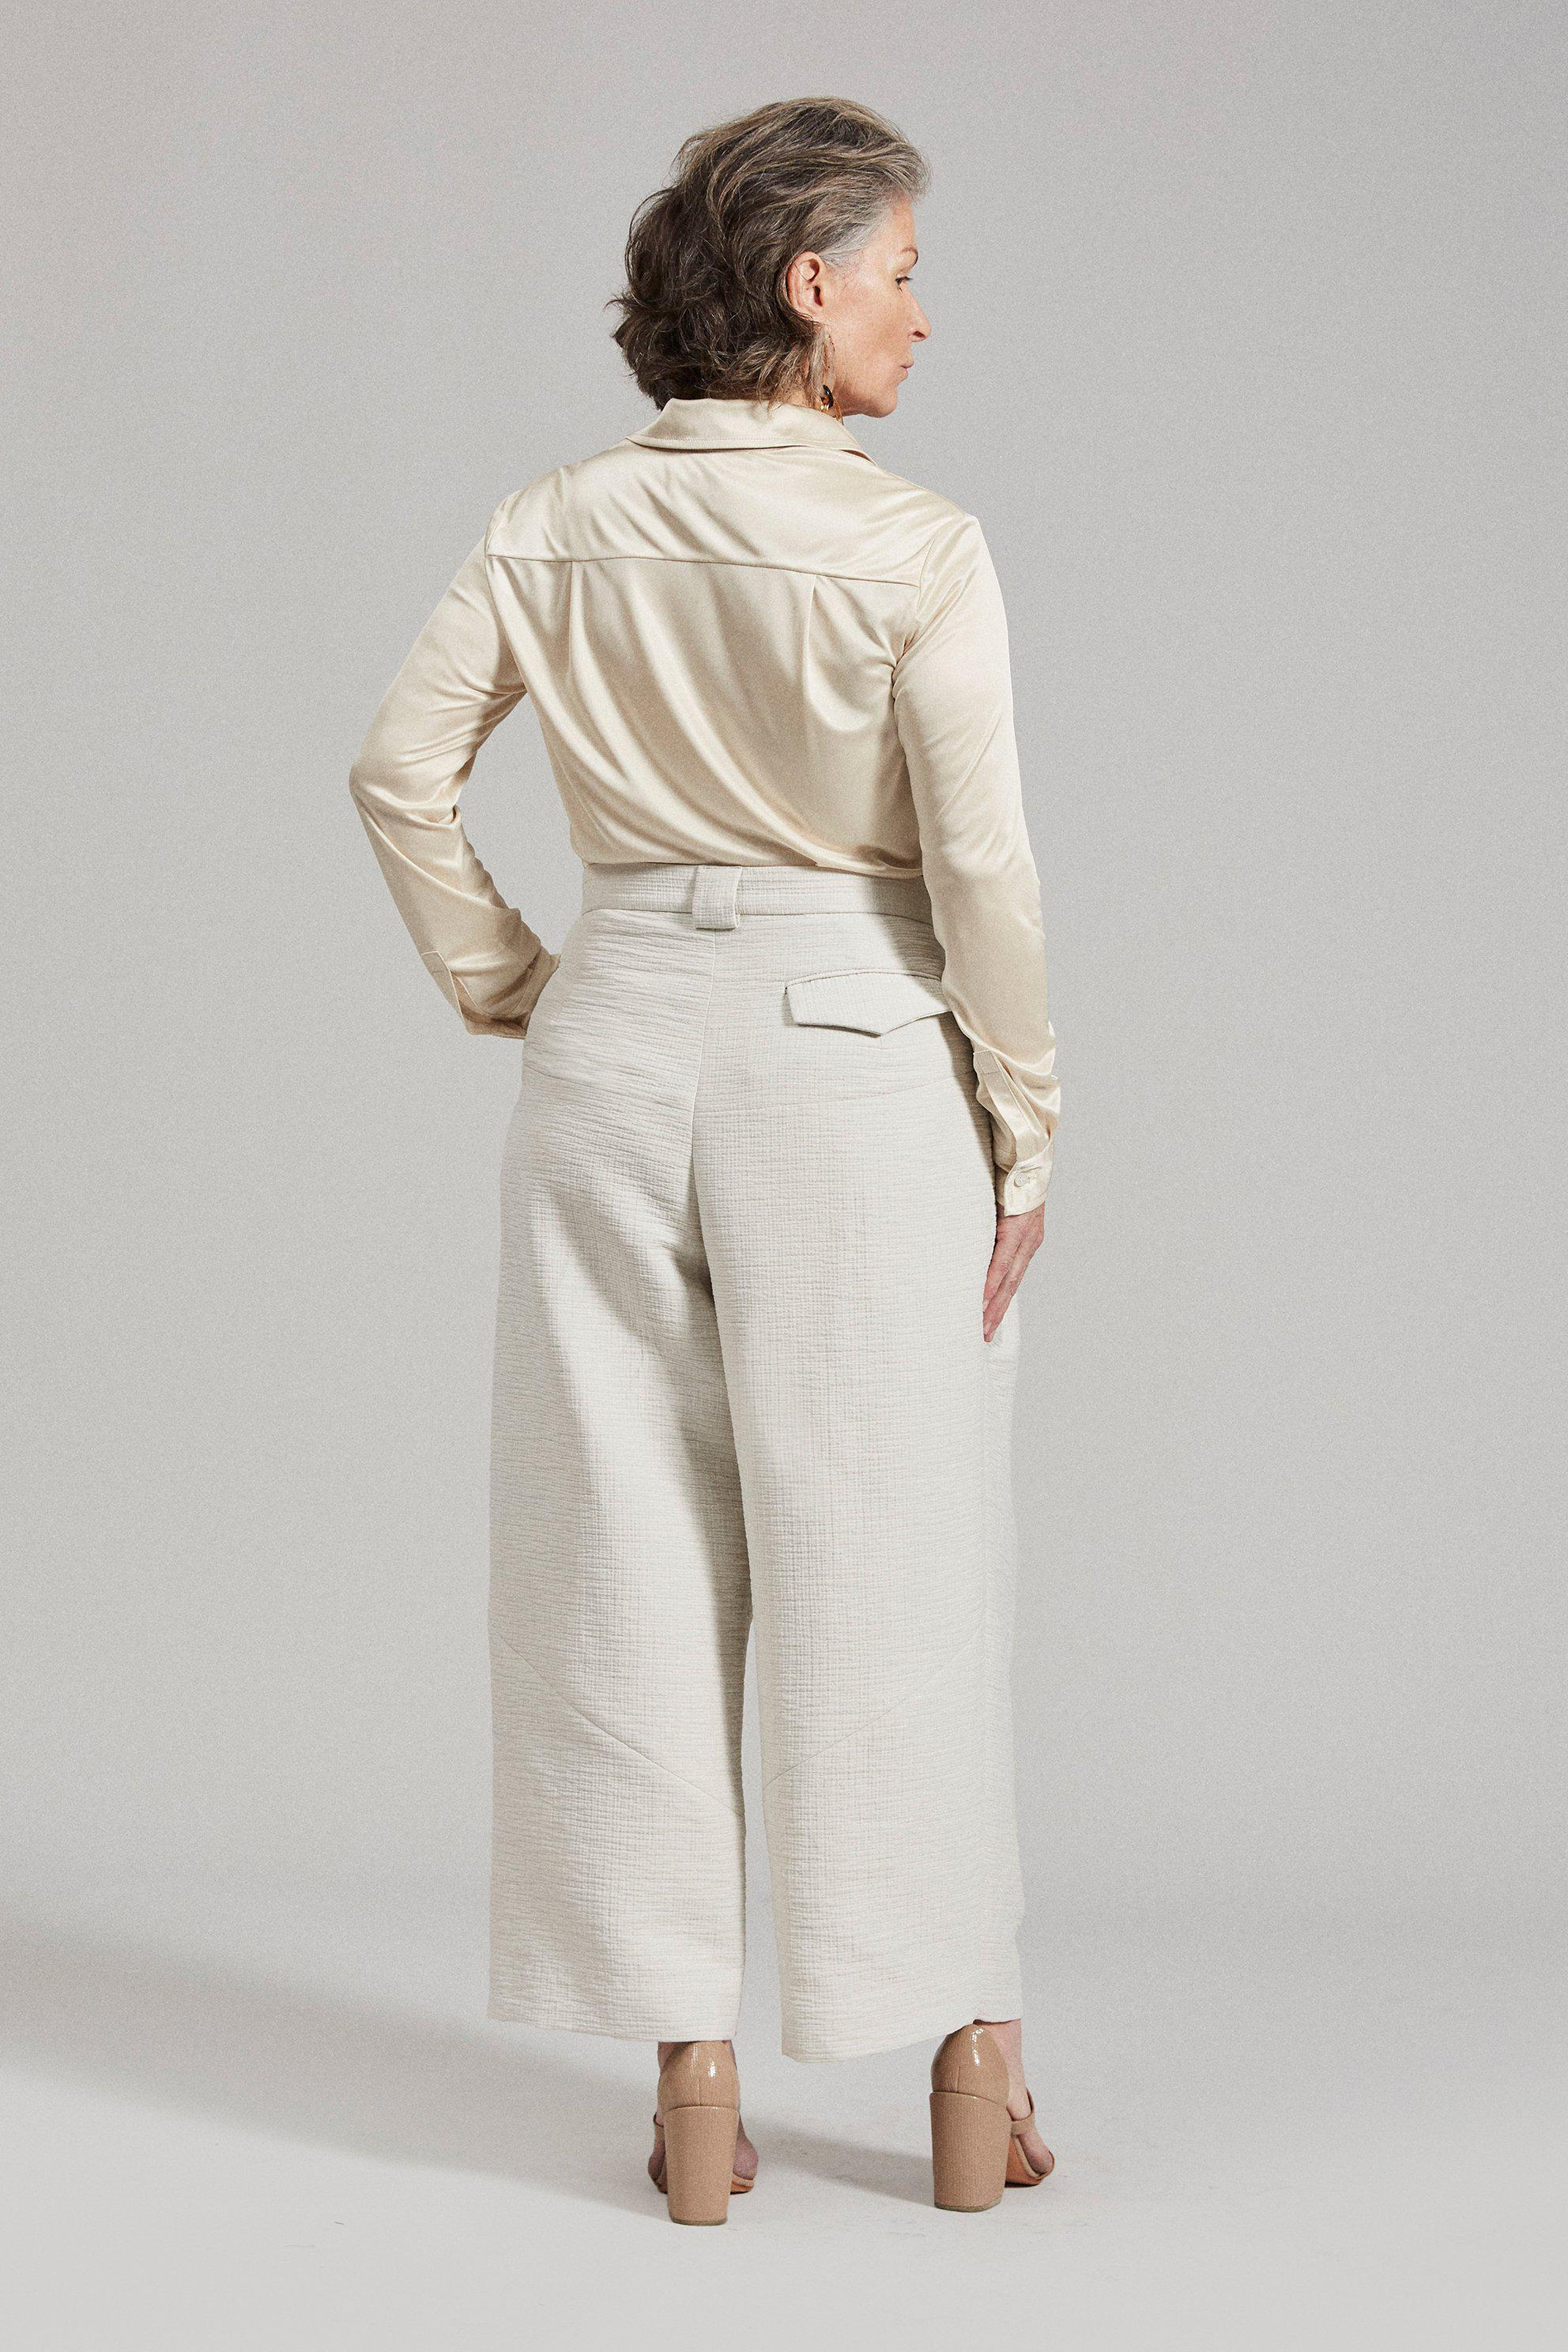 Cropped Divide Pant 2